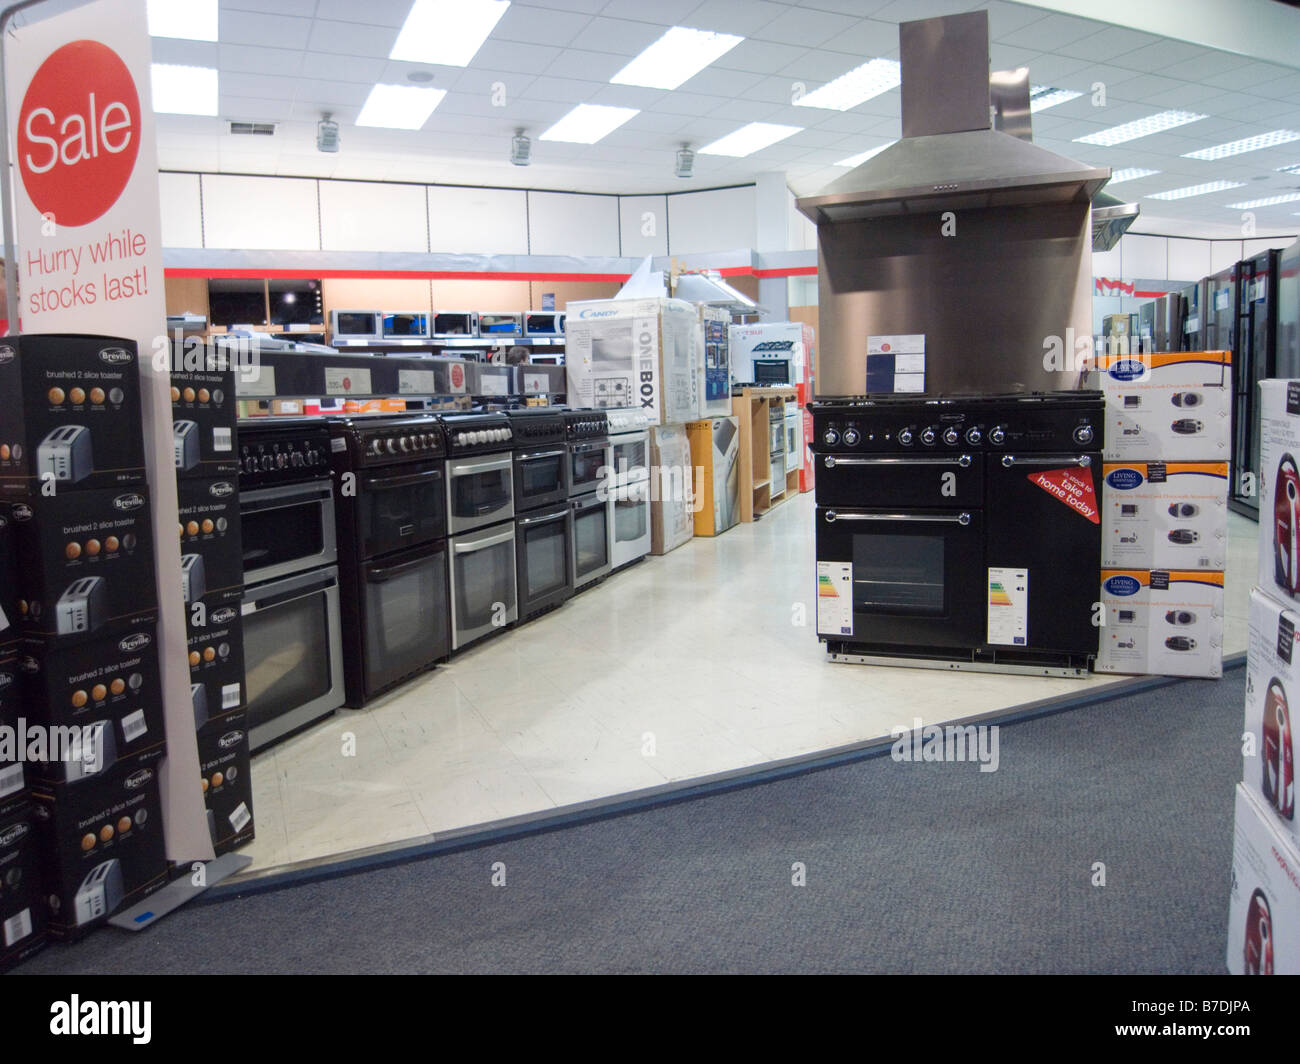 Close Up The cookers for sale in a large electrical retailer - Stock Image